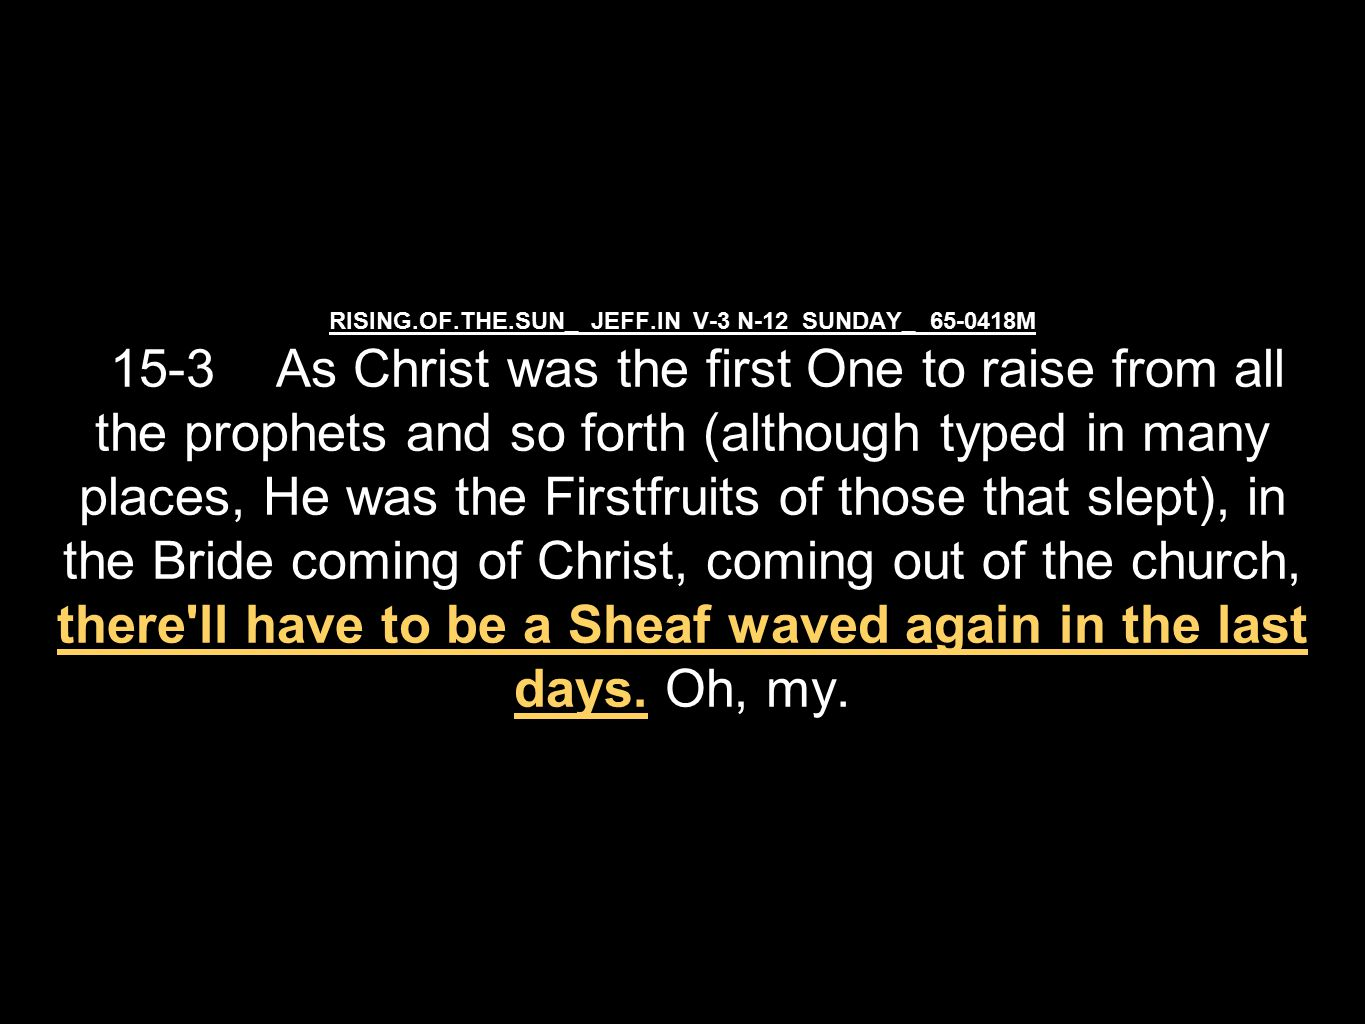 RISING.OF.THE.SUN_ JEFF.IN V-3 N-12 SUNDAY_ 65-0418M 15-3 As Christ was the first One to raise from all the prophets and so forth (although typed in many places, He was the Firstfruits of those that slept), in the Bride coming of Christ, coming out of the church, there ll have to be a Sheaf waved again in the last days.